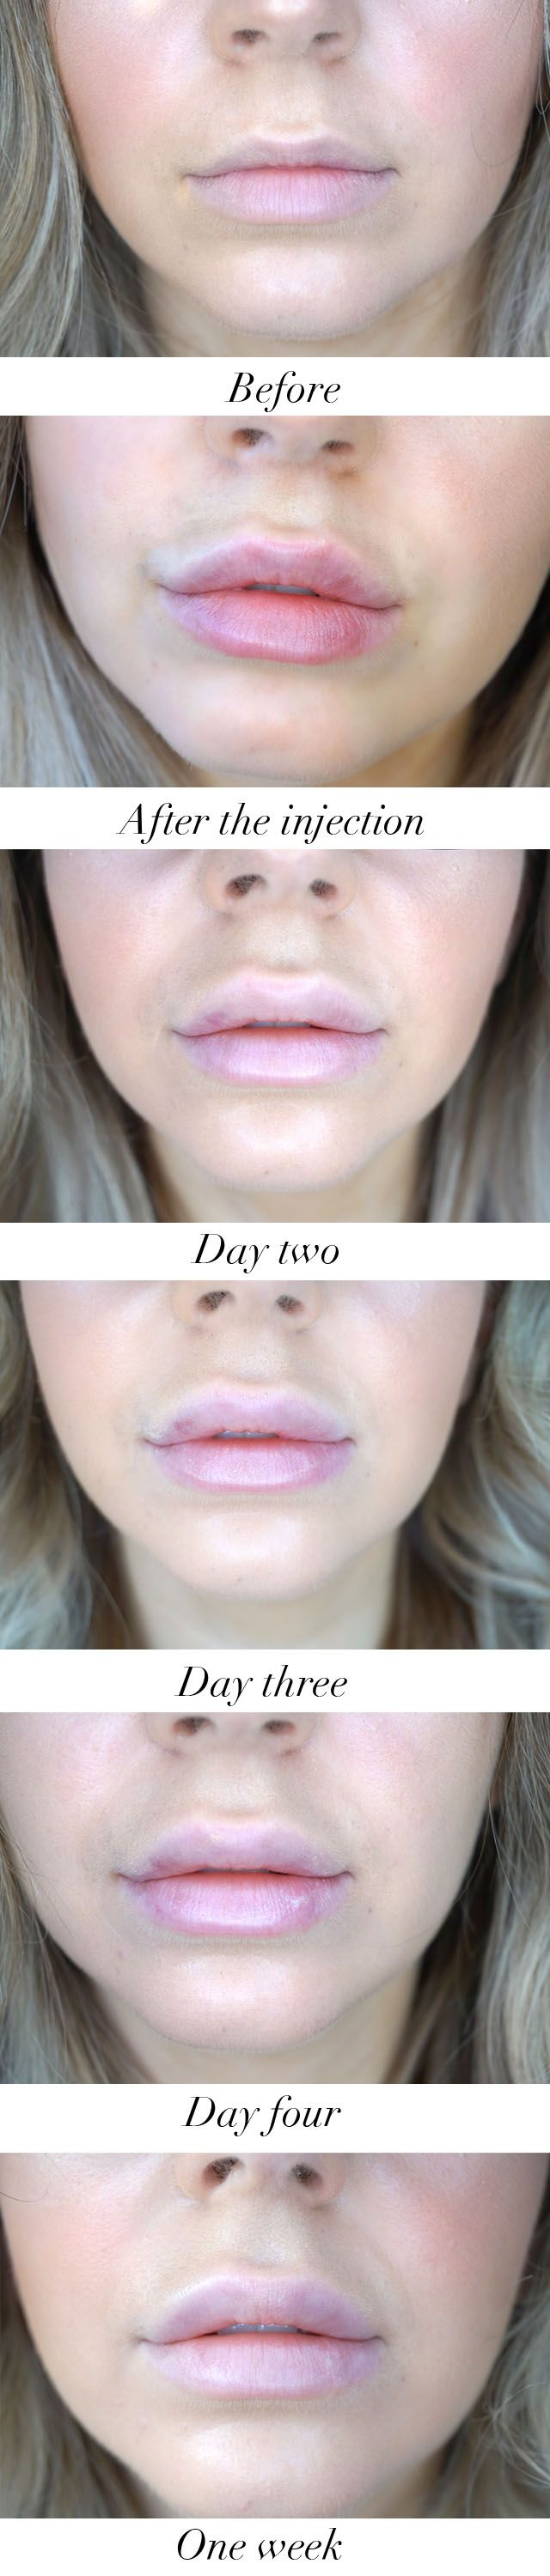 2134a3bd3eeabeb4ed53118104ef9ae9 - How Often Do You Have To Get Your Lips Refilled